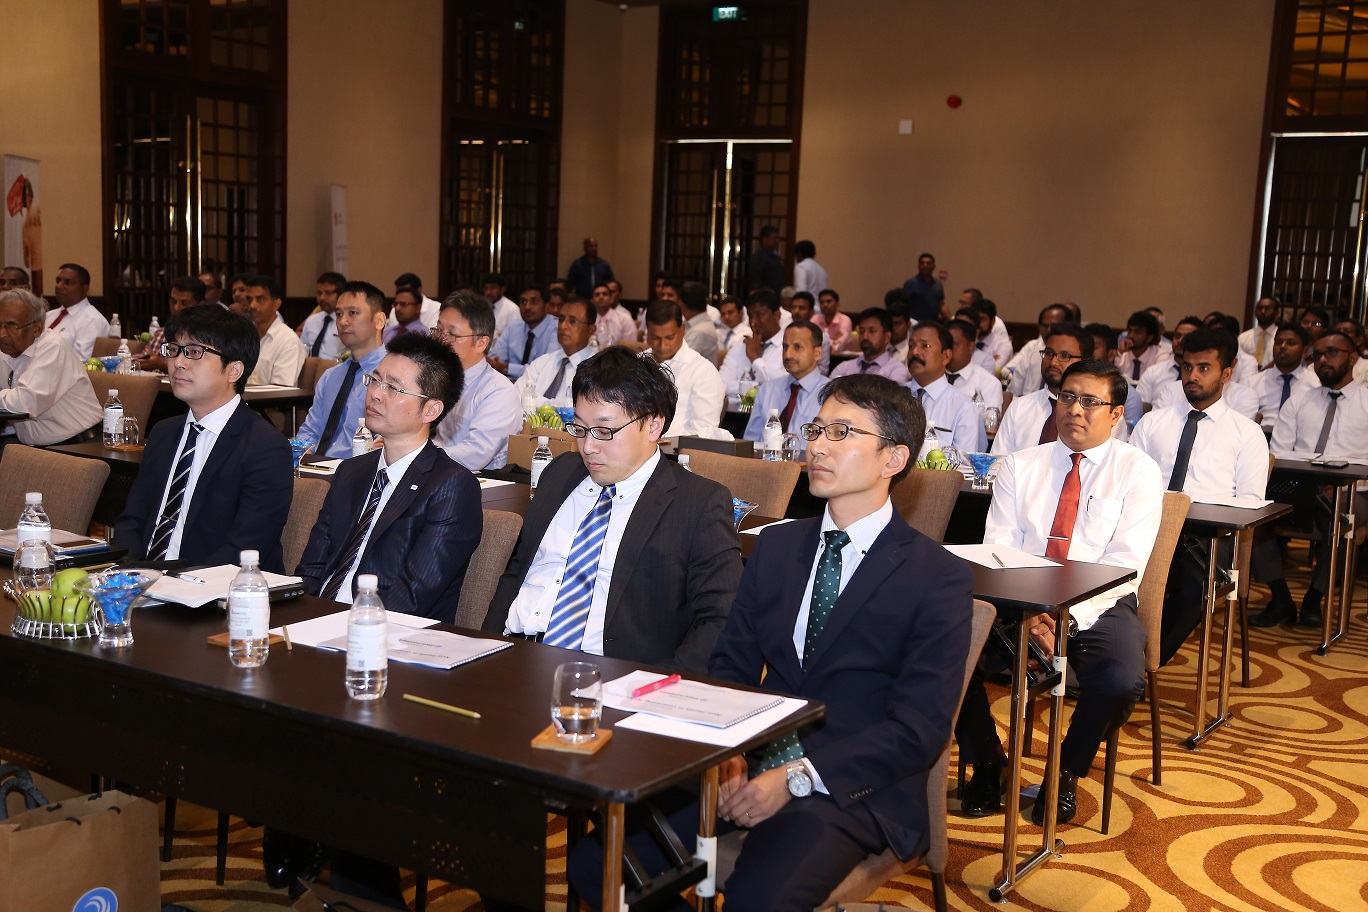 1 Japanese experts from UBE INDUSTRIES LTD who conducted the Seminar